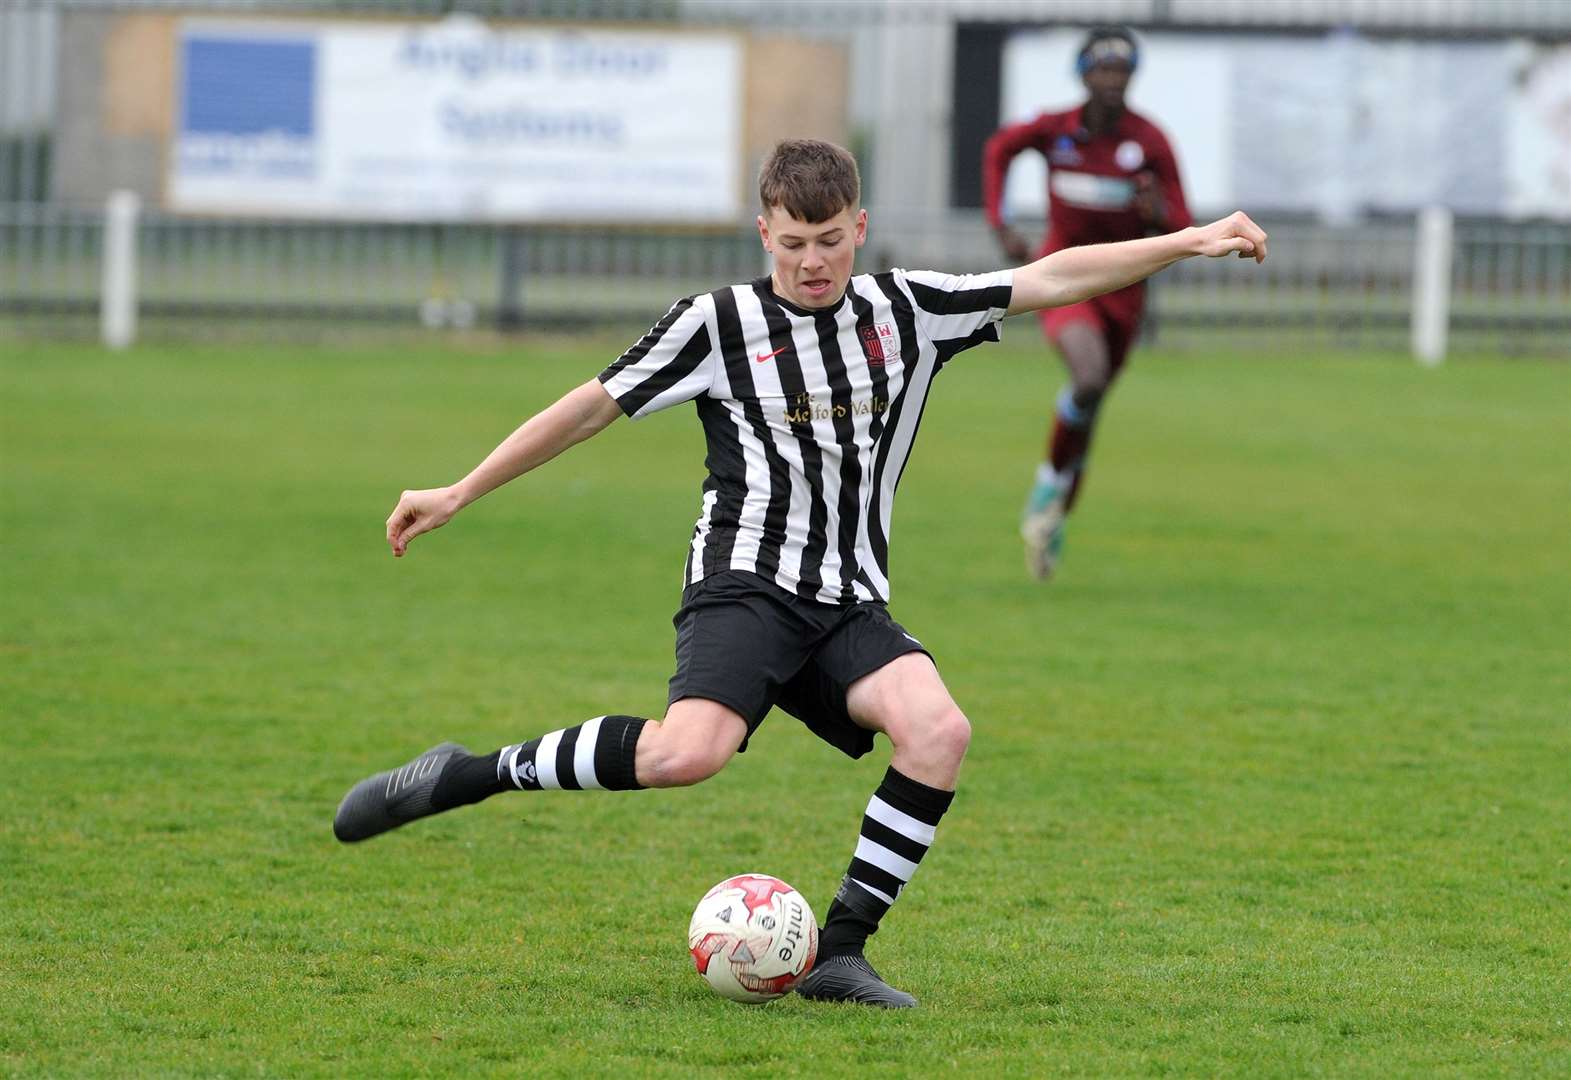 THURLOW NUNN: Haverhill Rovers and Ely strengthen with key defenders